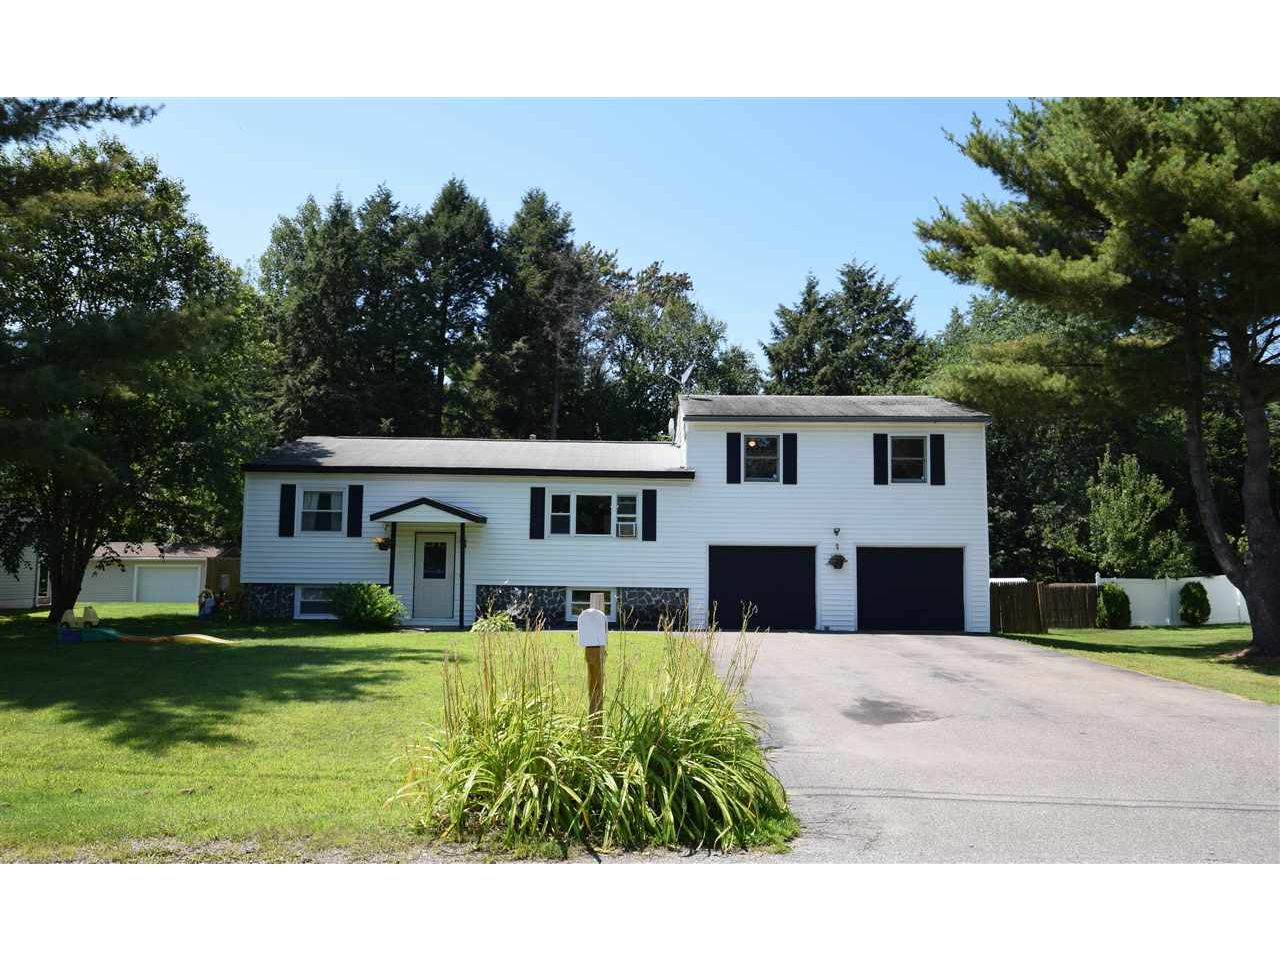 Sold property in Milton